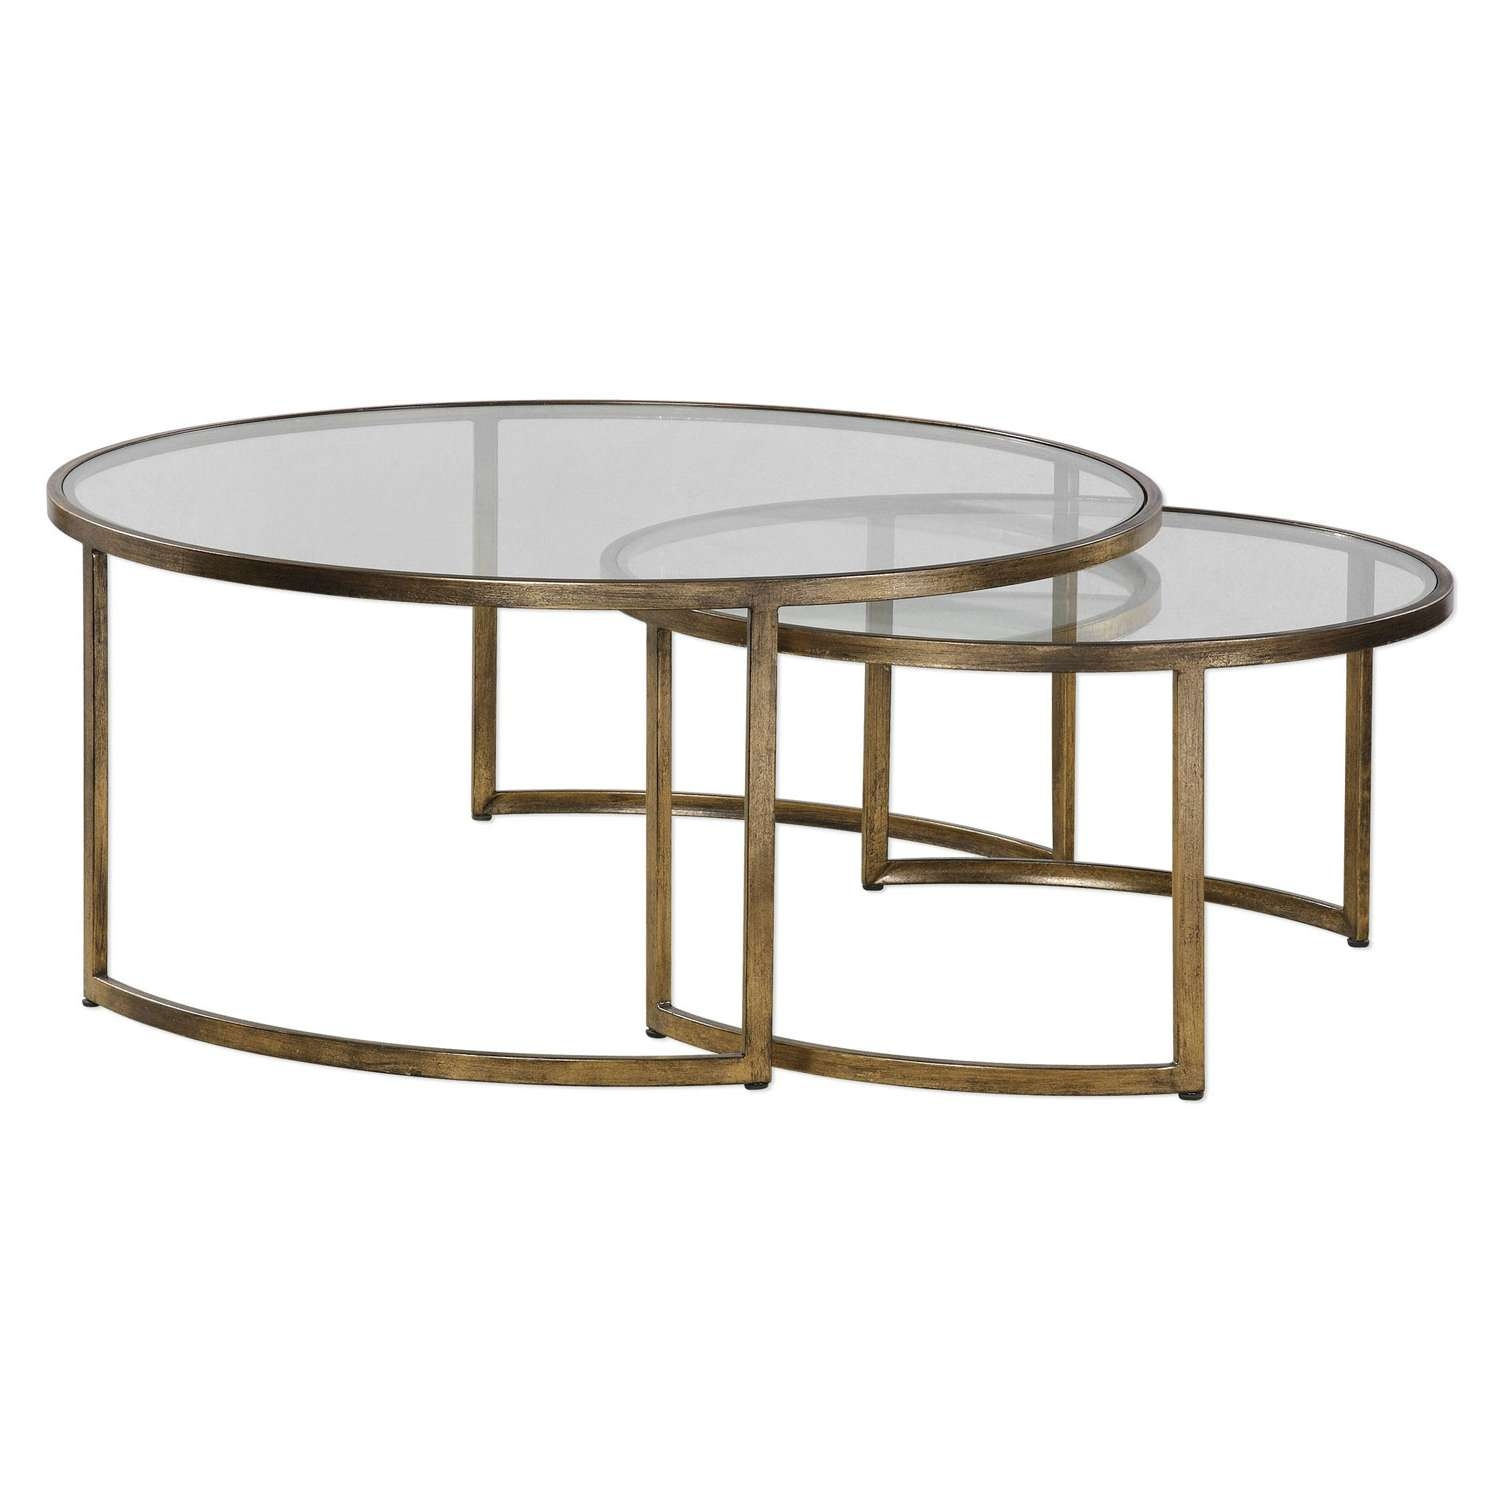 Nesting Accent Tables At Bellacor (View 15 of 20)